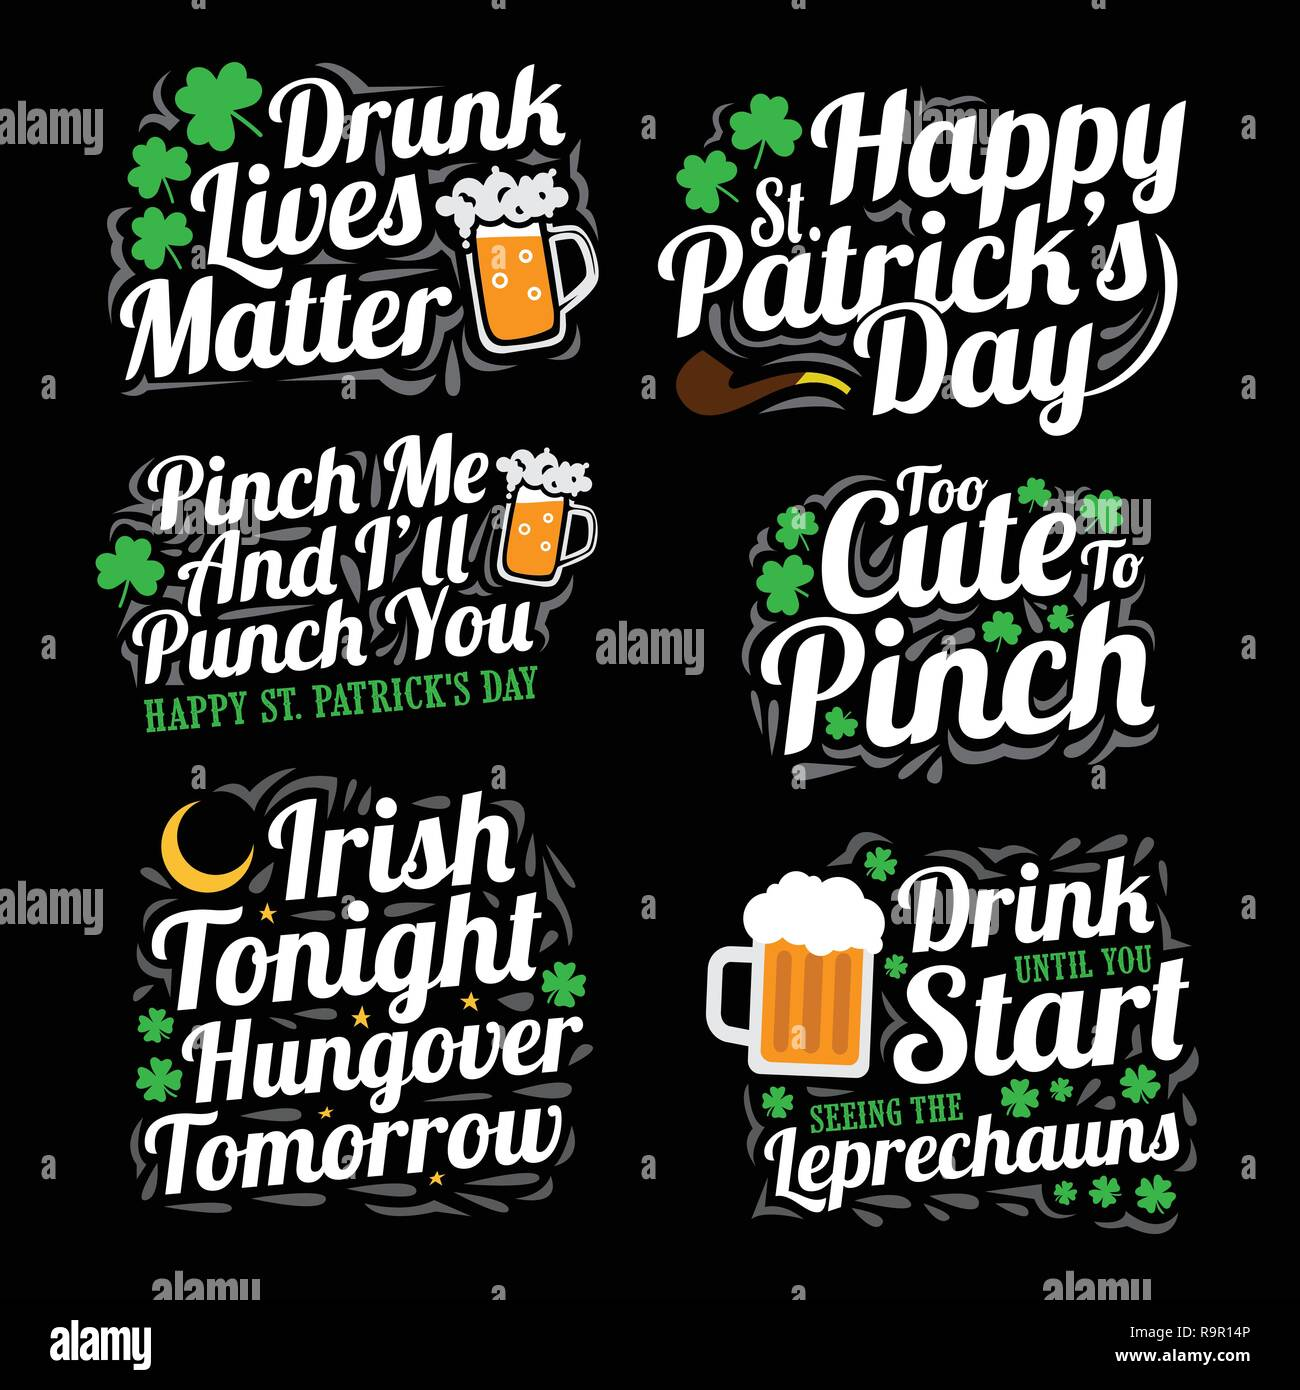 Day st quote patricks 30 Catchy